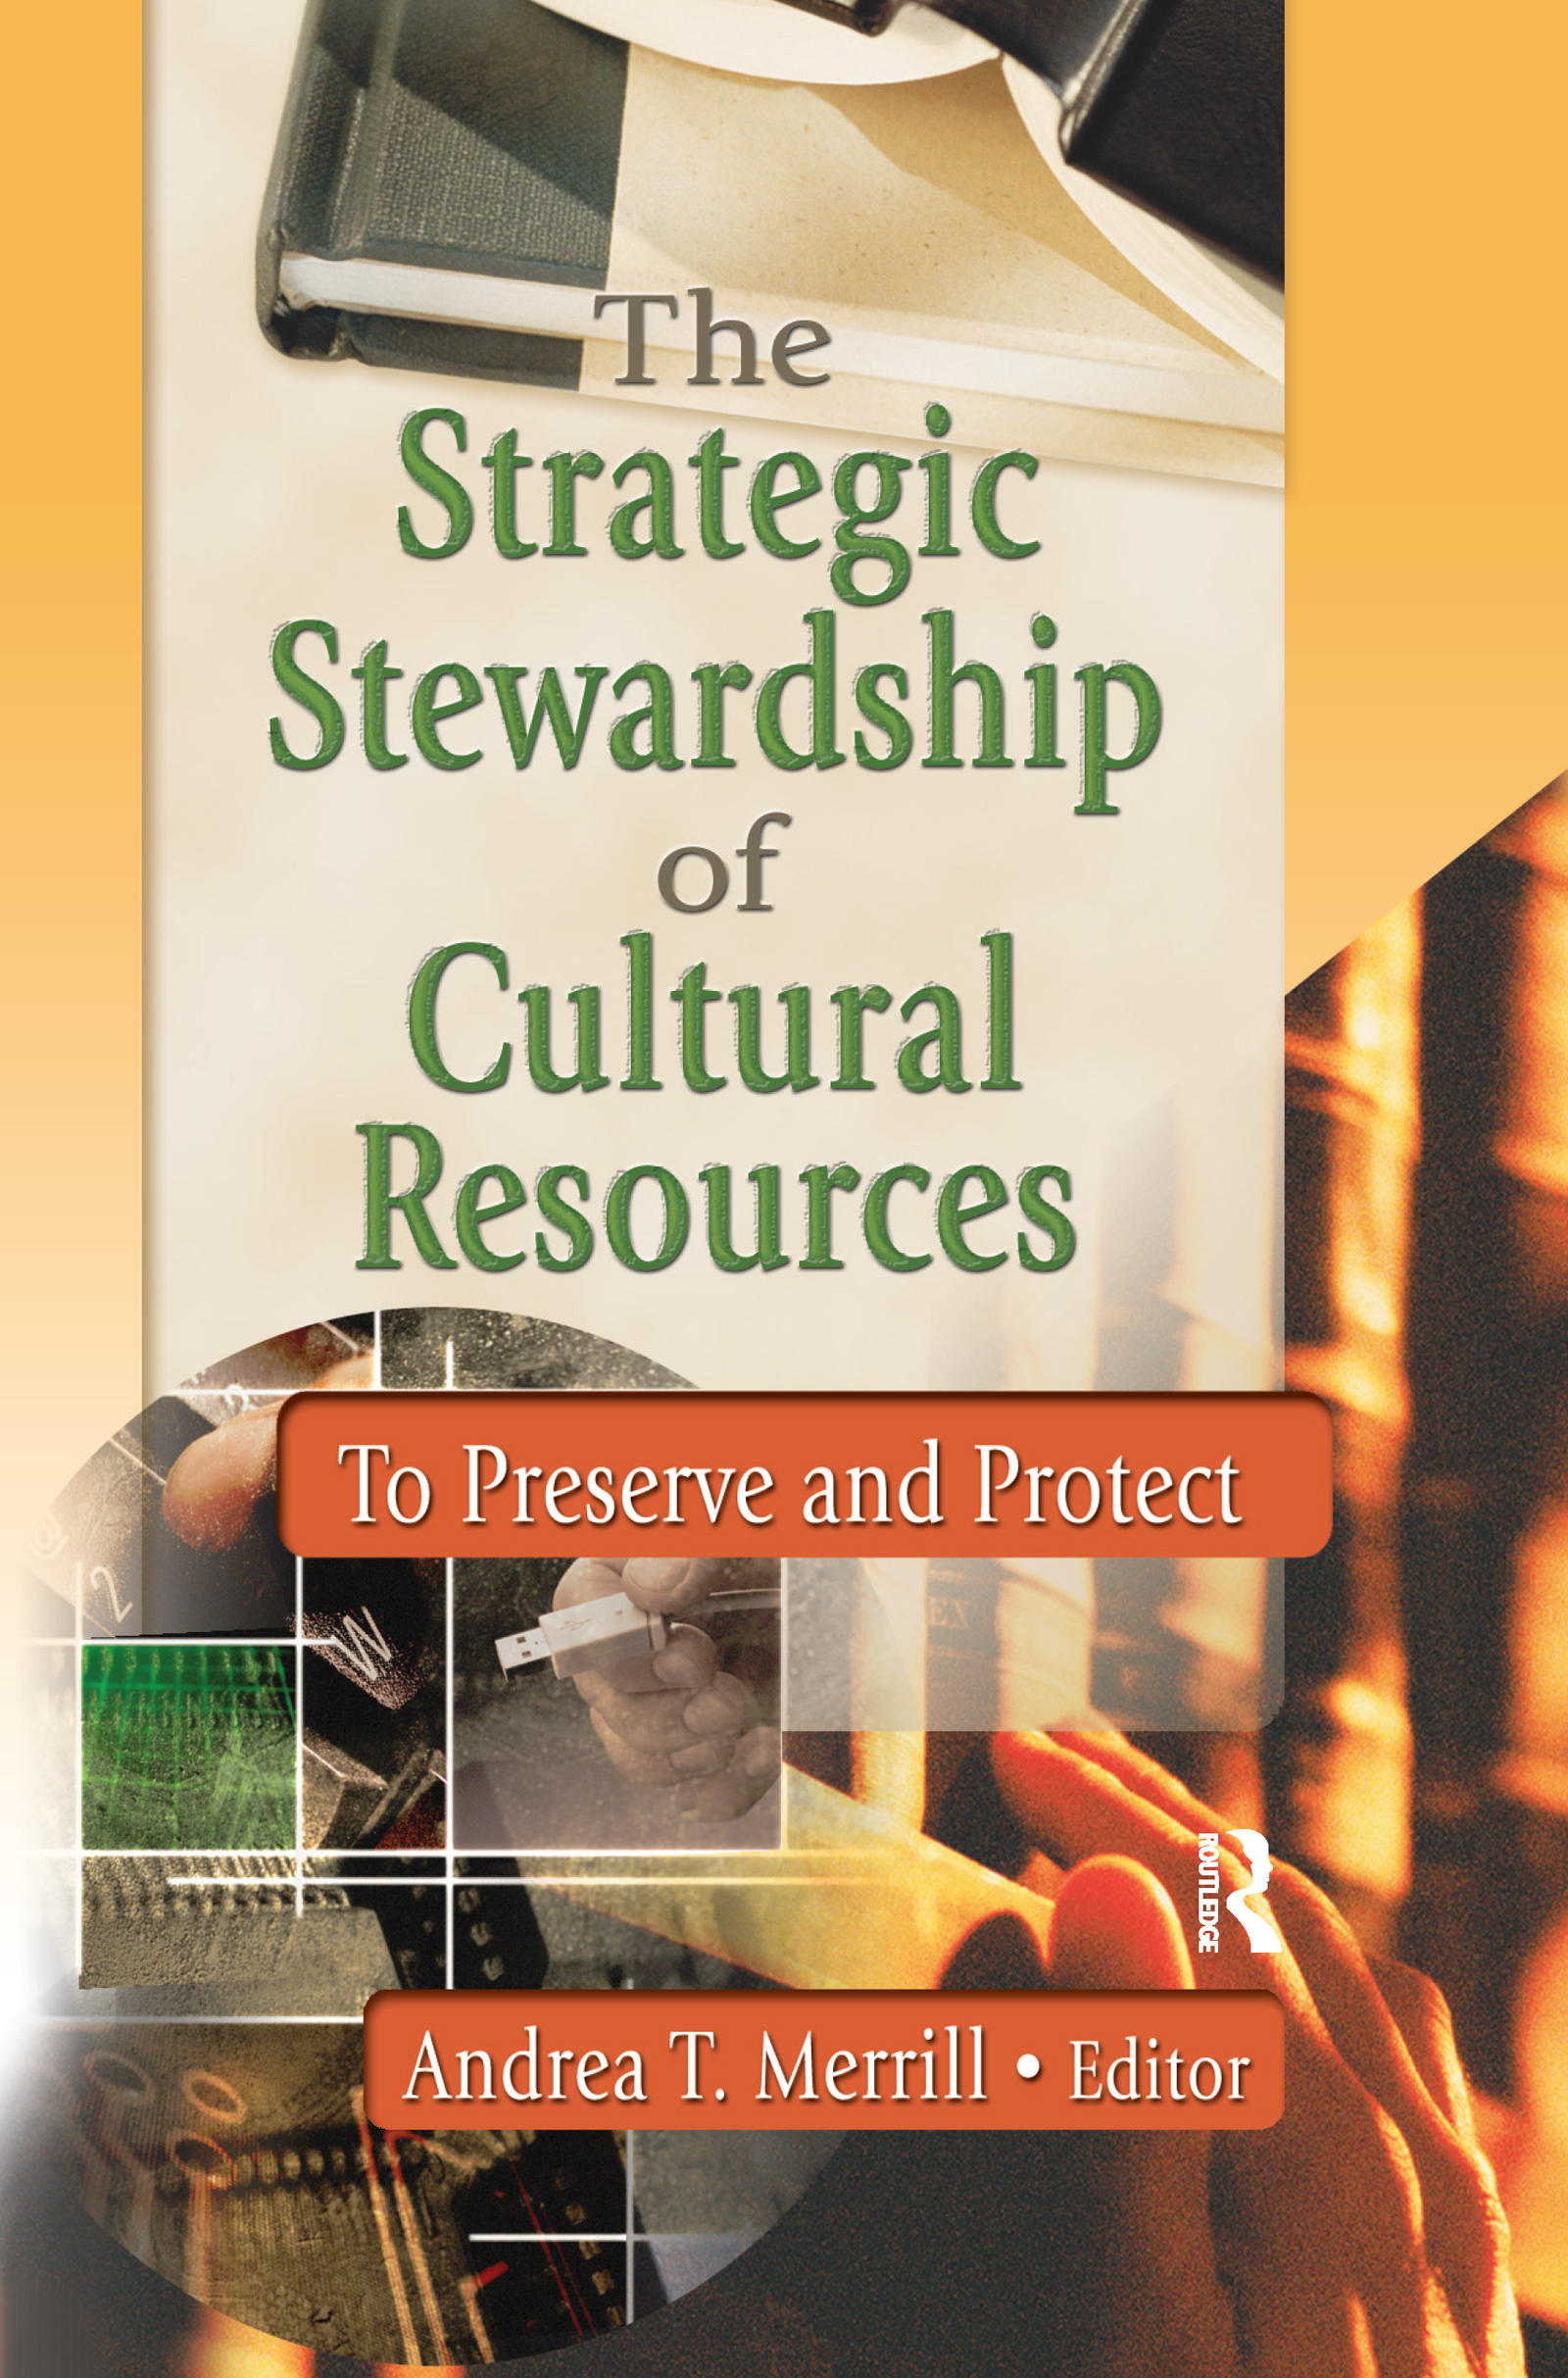 The Strategic Stewardship of Cultural Resources: To Preserve and Protect book cover